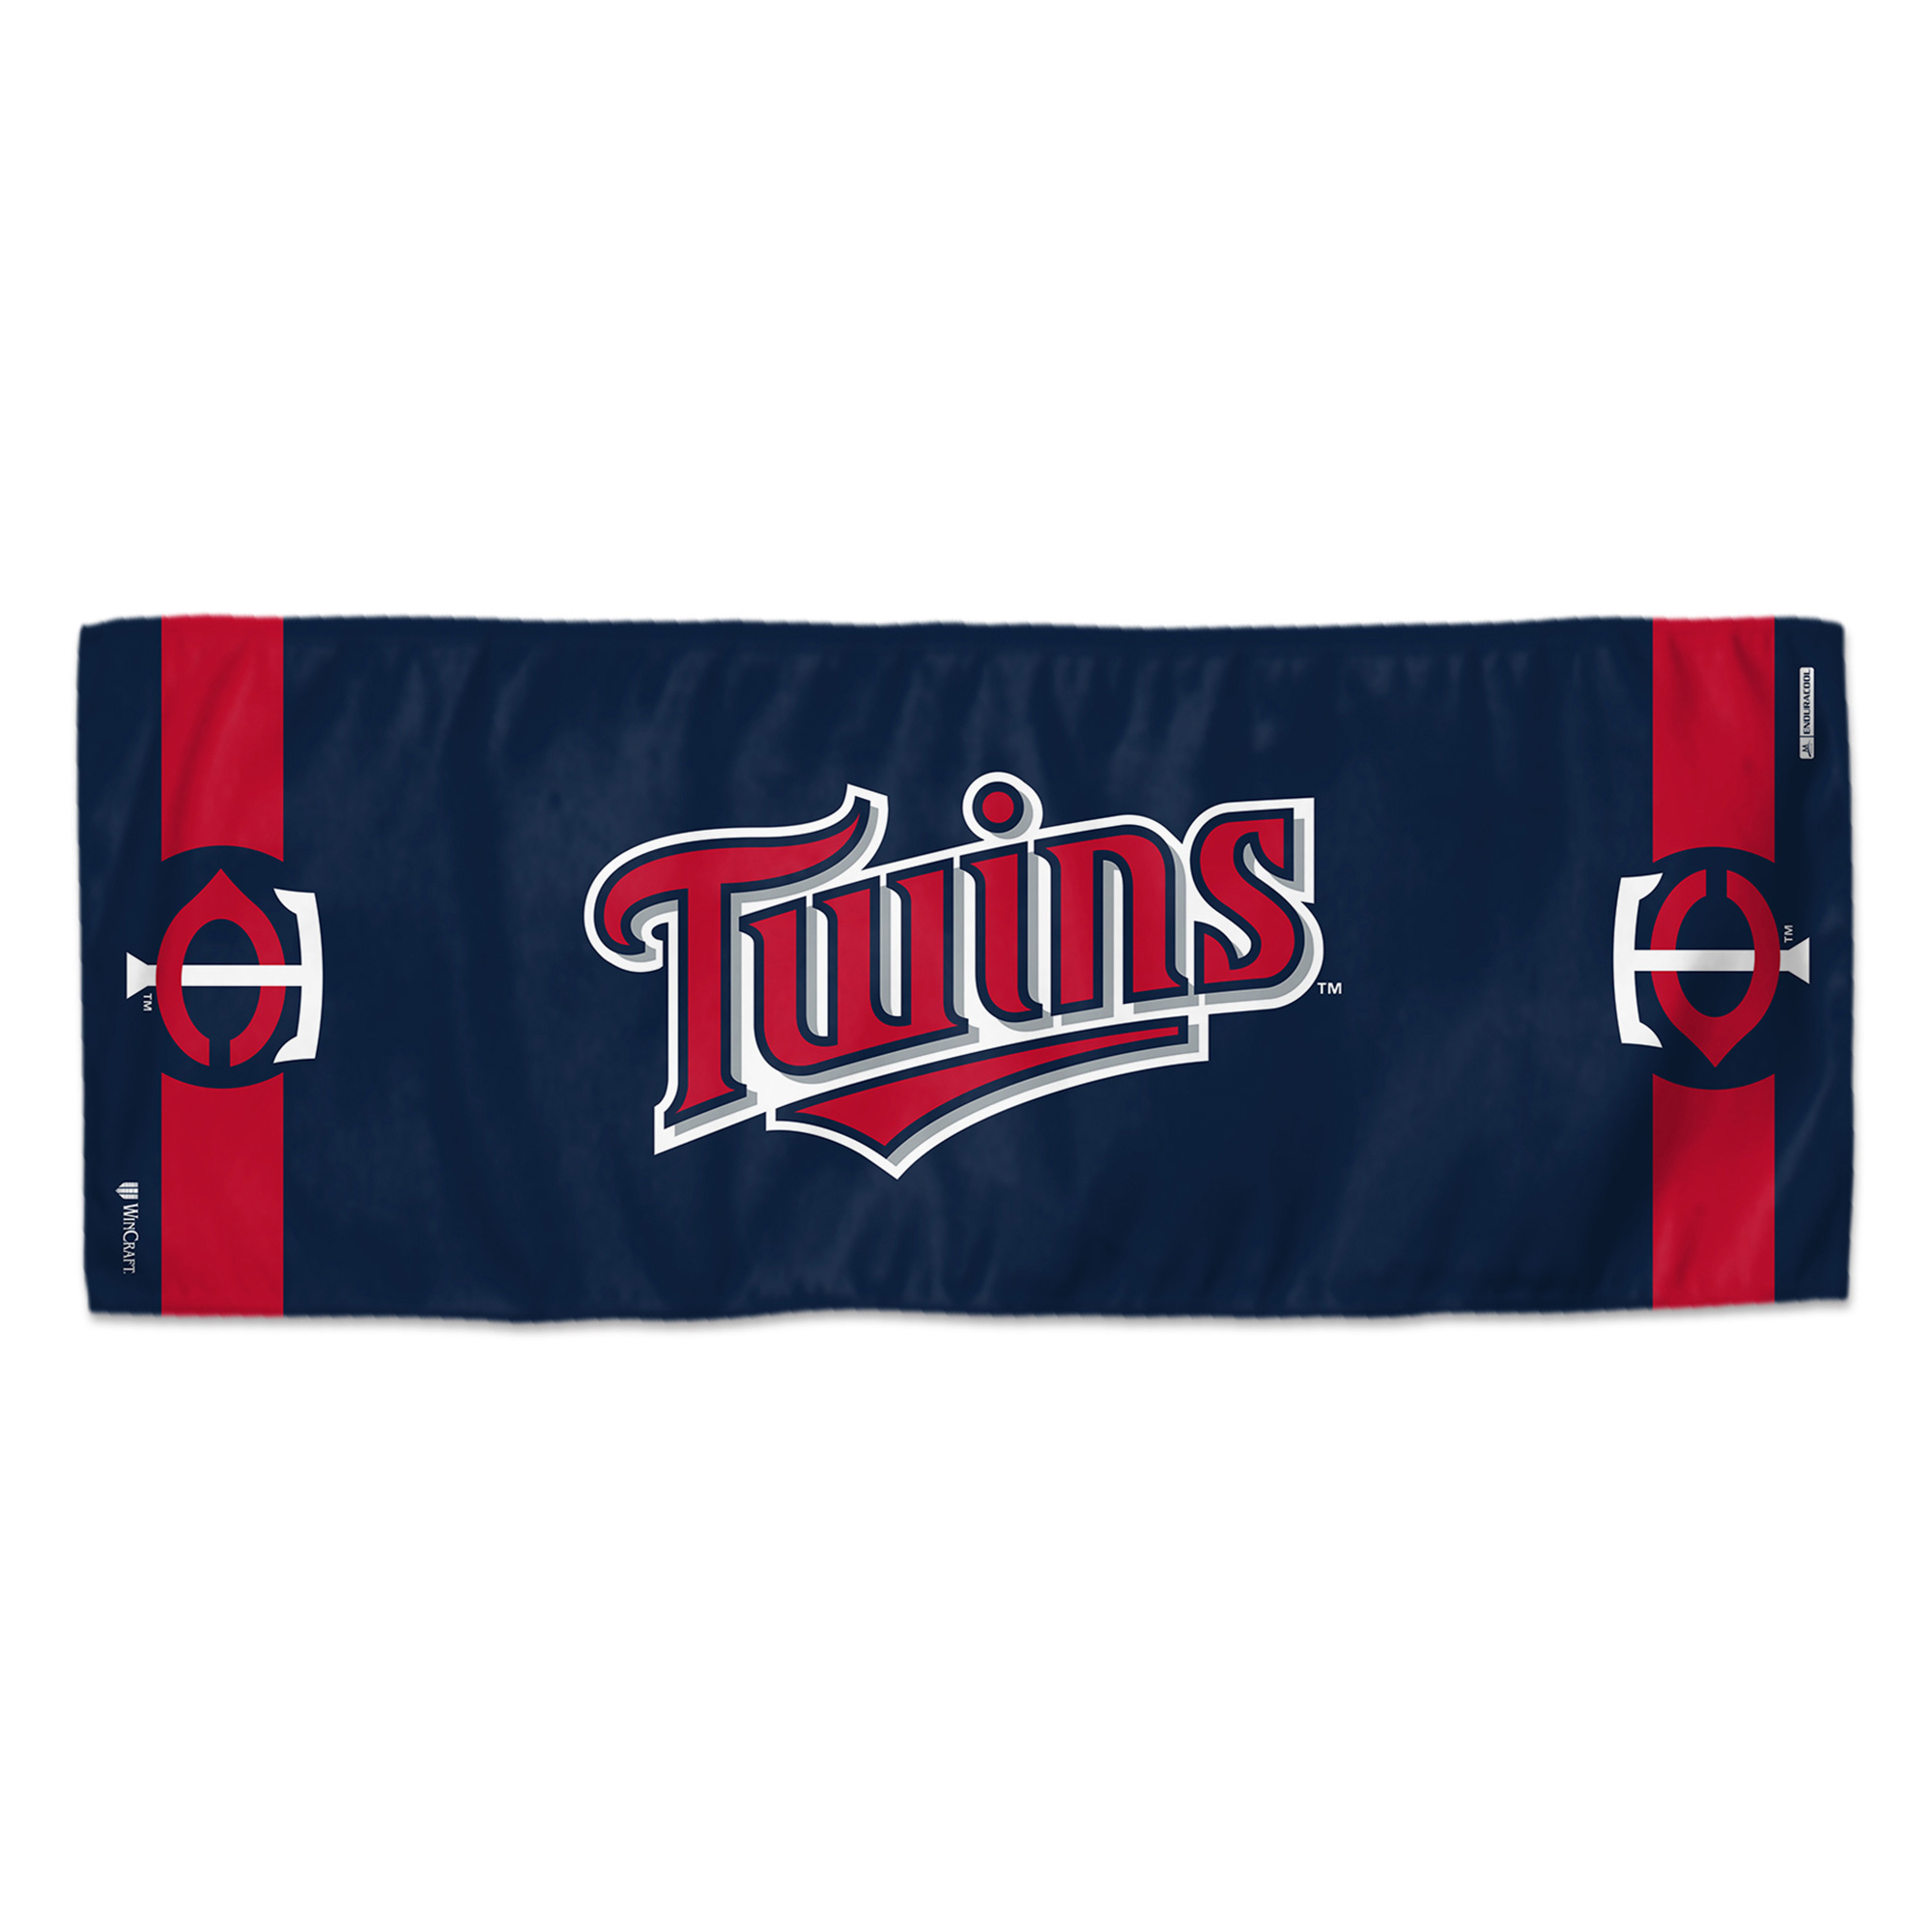 "Minnesota Twins WinCraft 12"" x 30"" Double-Sided Cooling Towel - No Size"